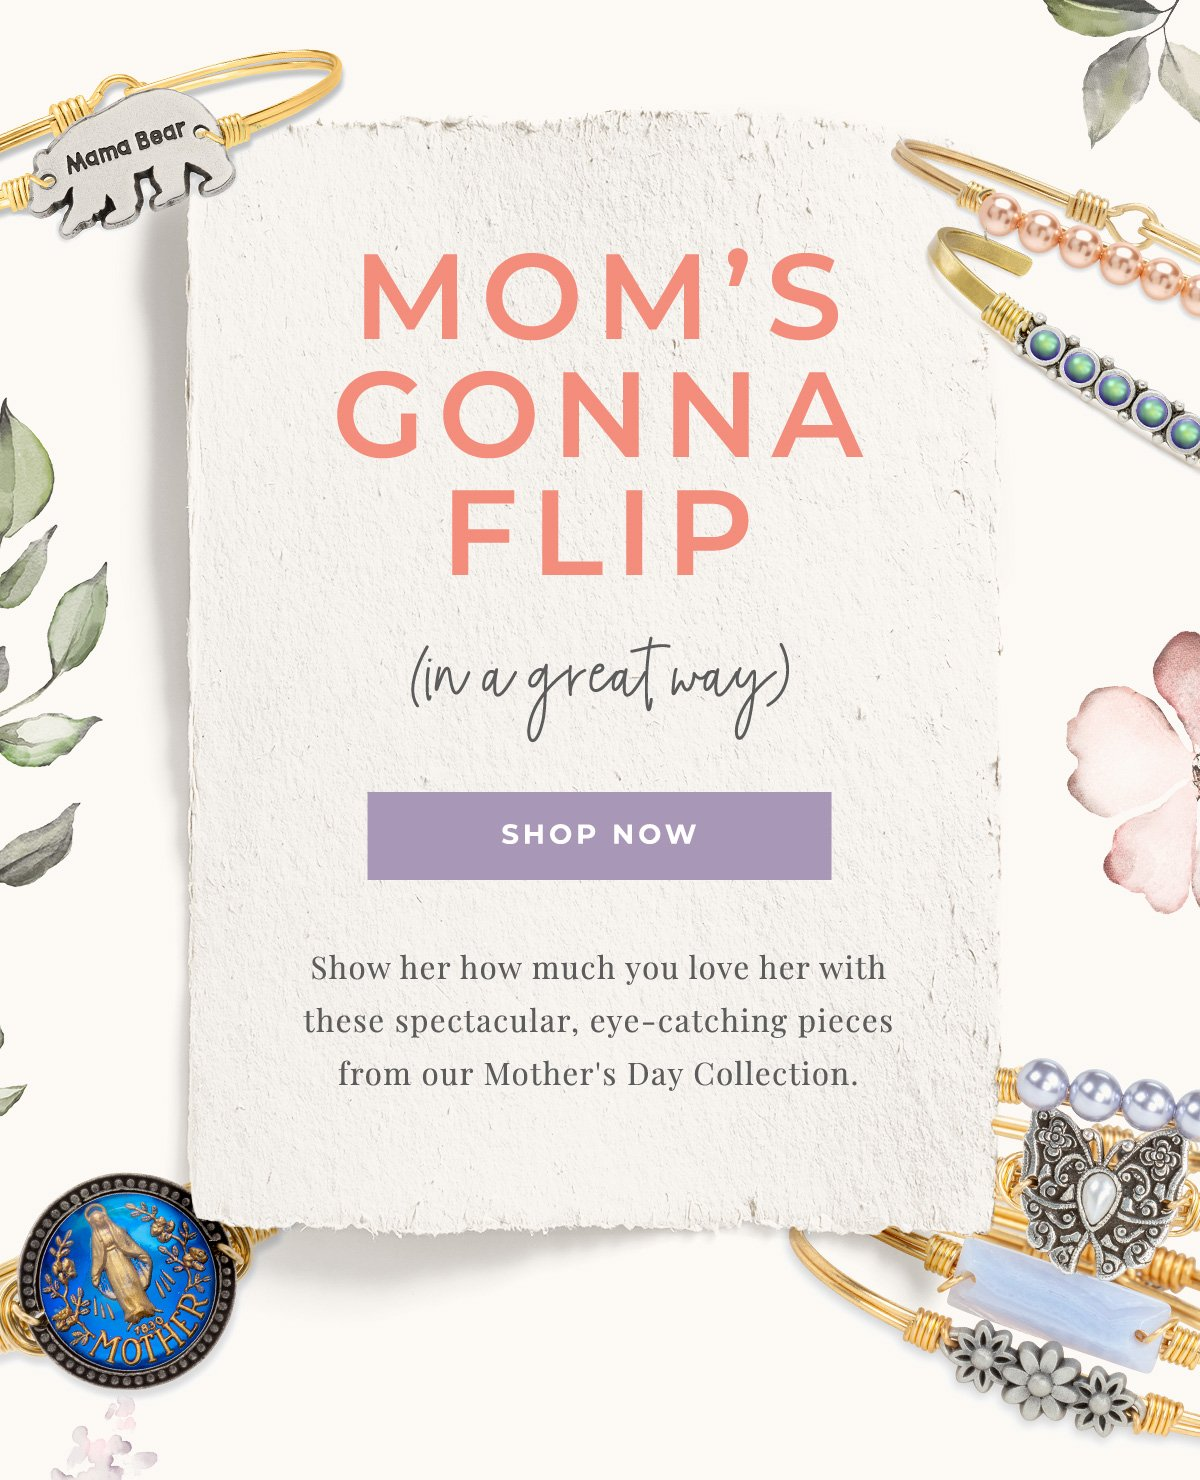 MOM'S GONNA FLIP | (in a great way) | SHOP NOW | Show her how much you love her with these spectacular, eye-catching pieces from our Mother's Day Collection.